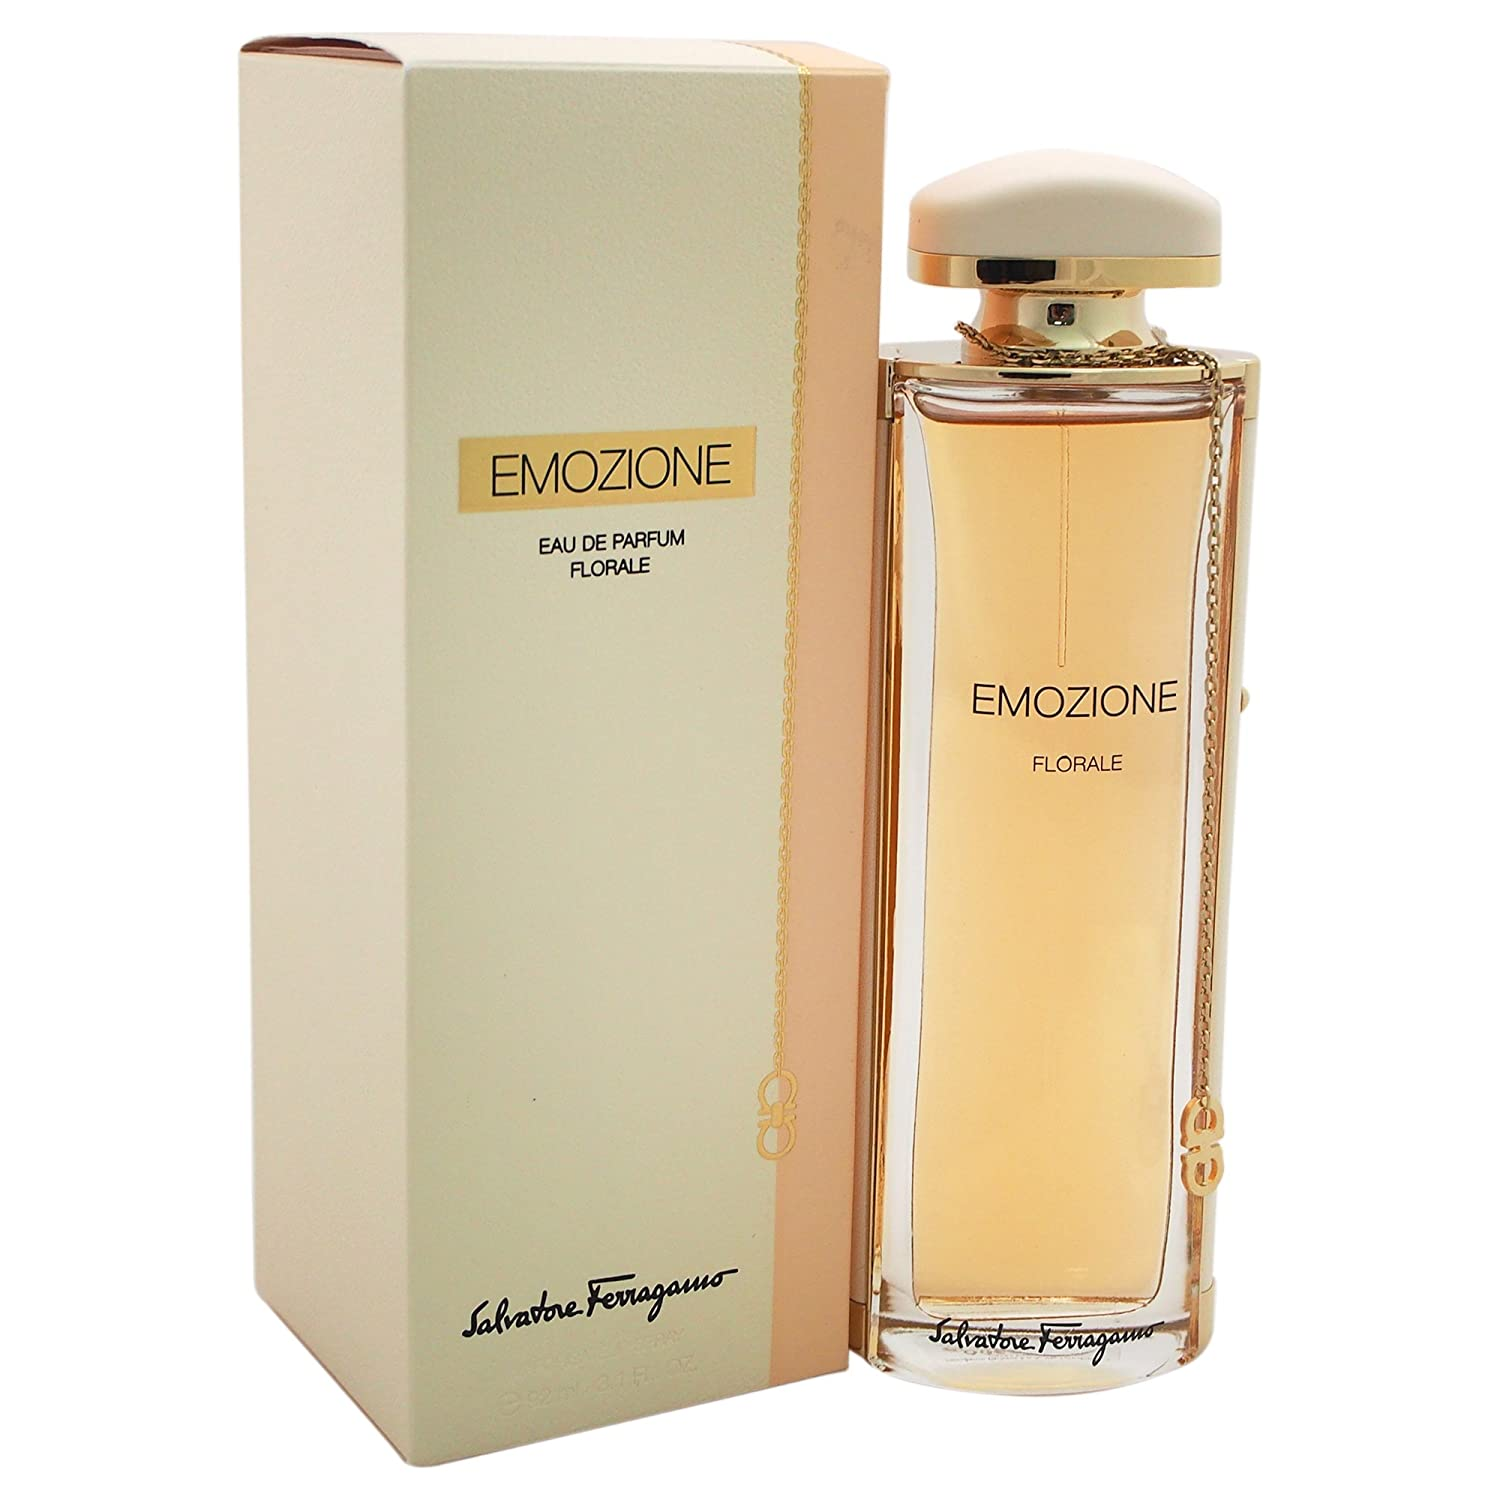 Emozione Florale By Salvatore Ferragamo Eau De Parfum Spray 3.1 Oz 290723